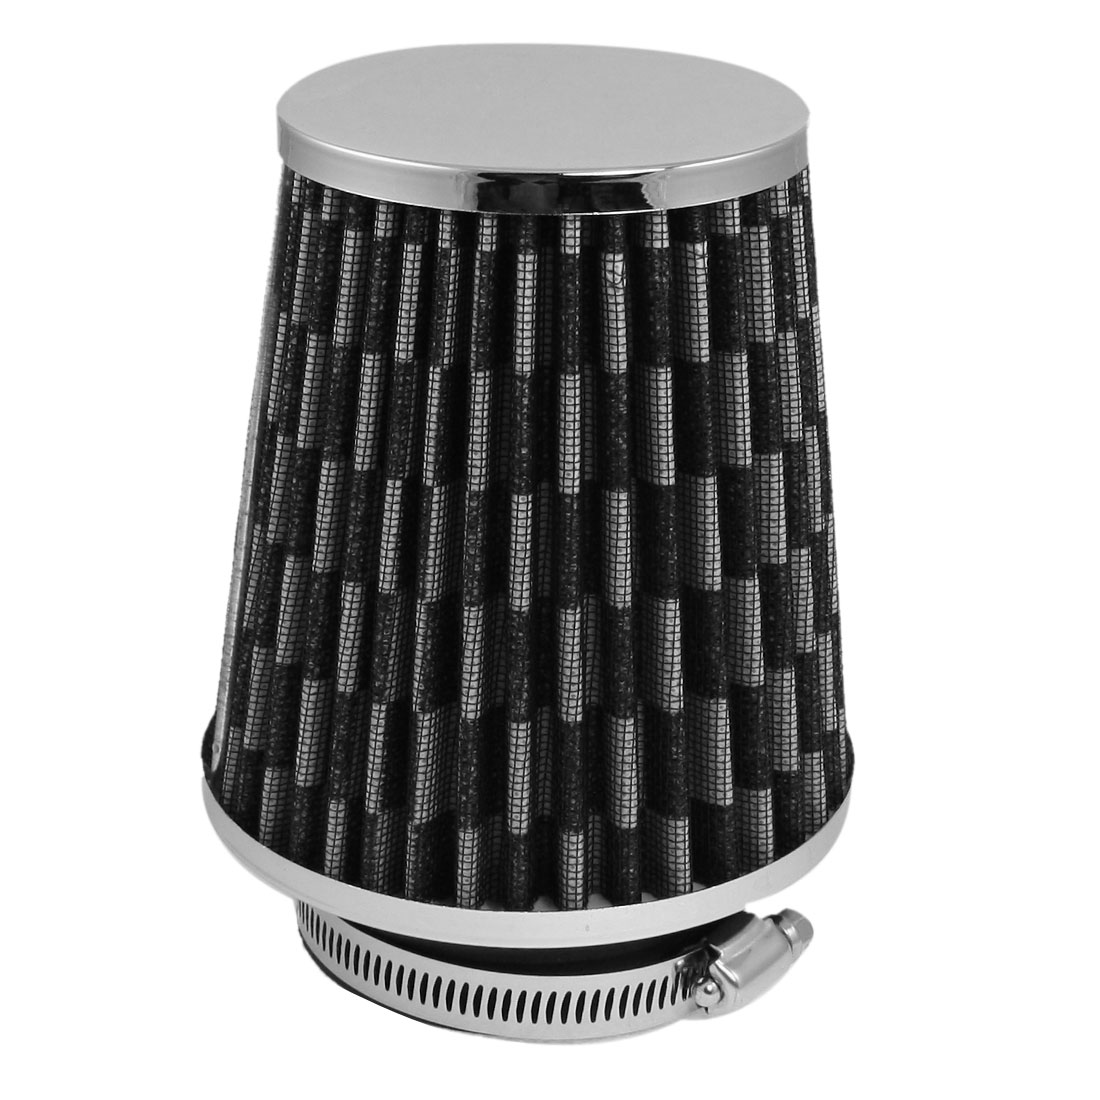 "Universal Cold Cone Air Intake Filter 76mm 3"" for Car Auto Vehicle"